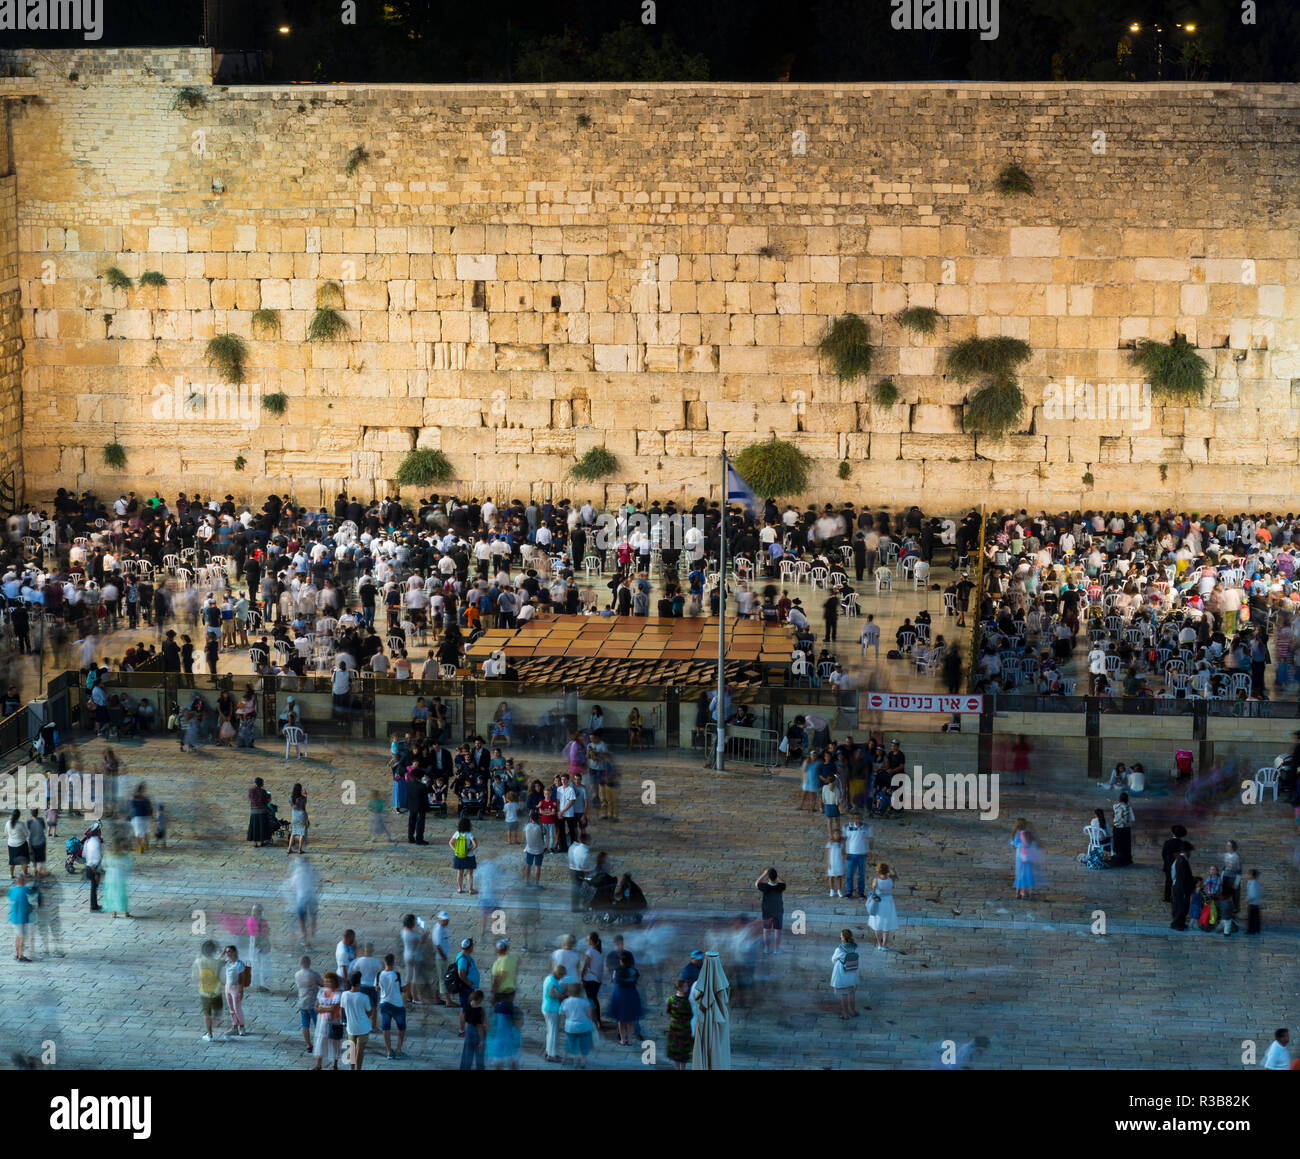 Many believers at the Wailing Wall in the evening, Old Town, Jerusalem, Israel - Stock Image